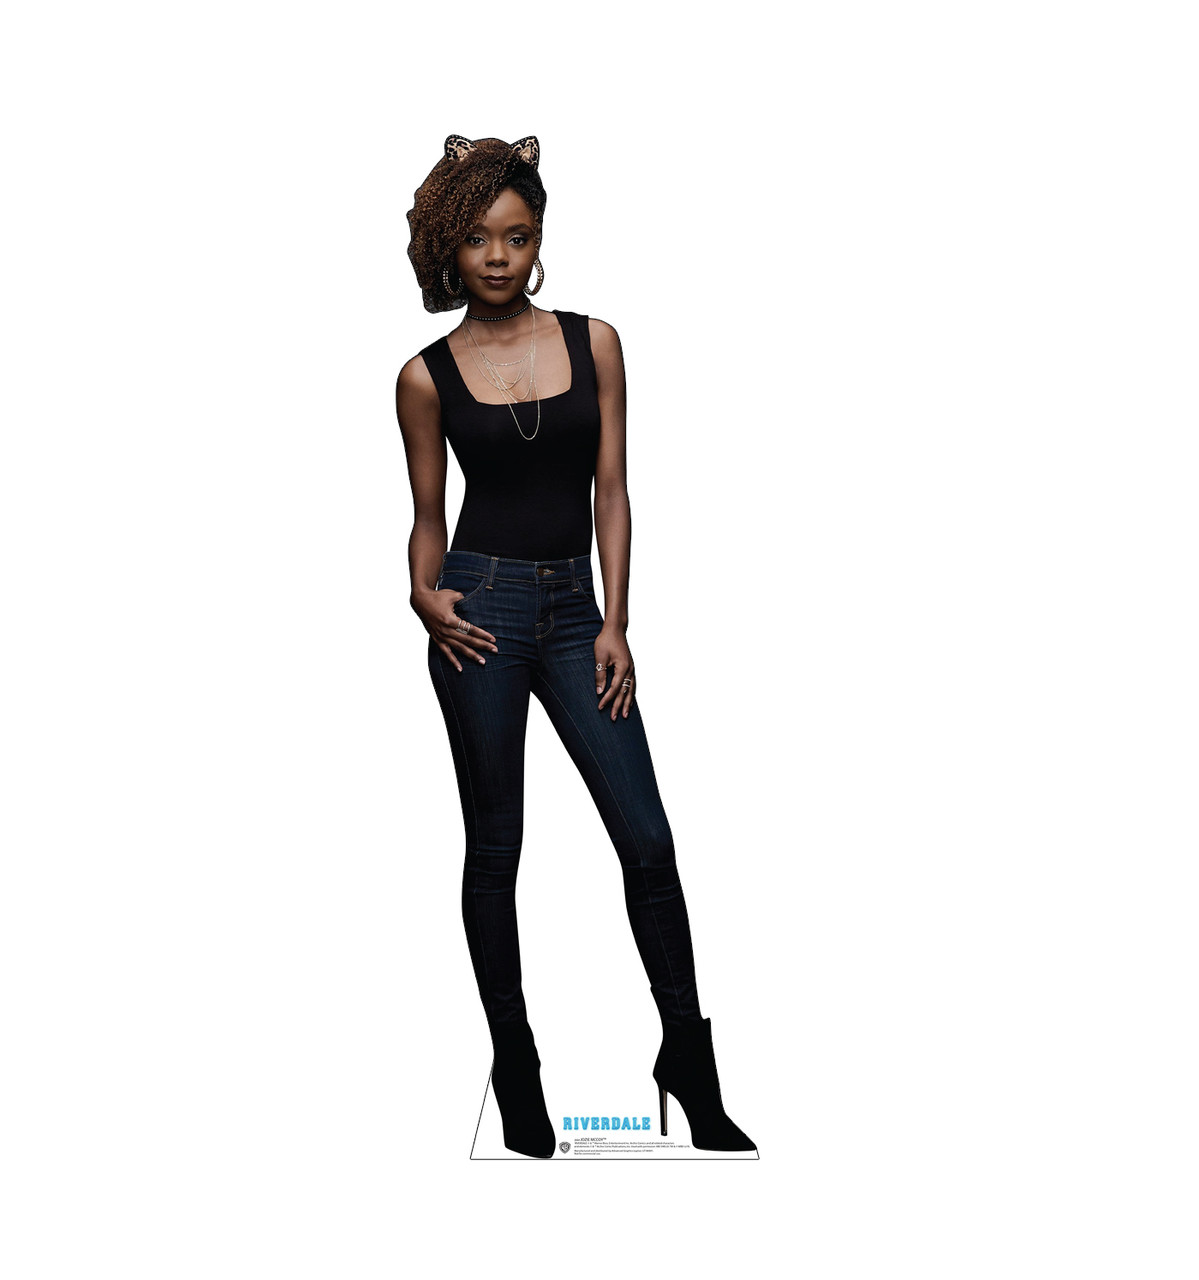 Life-size cardboard standee of Josie McCoy from the TV Series Riverdale.